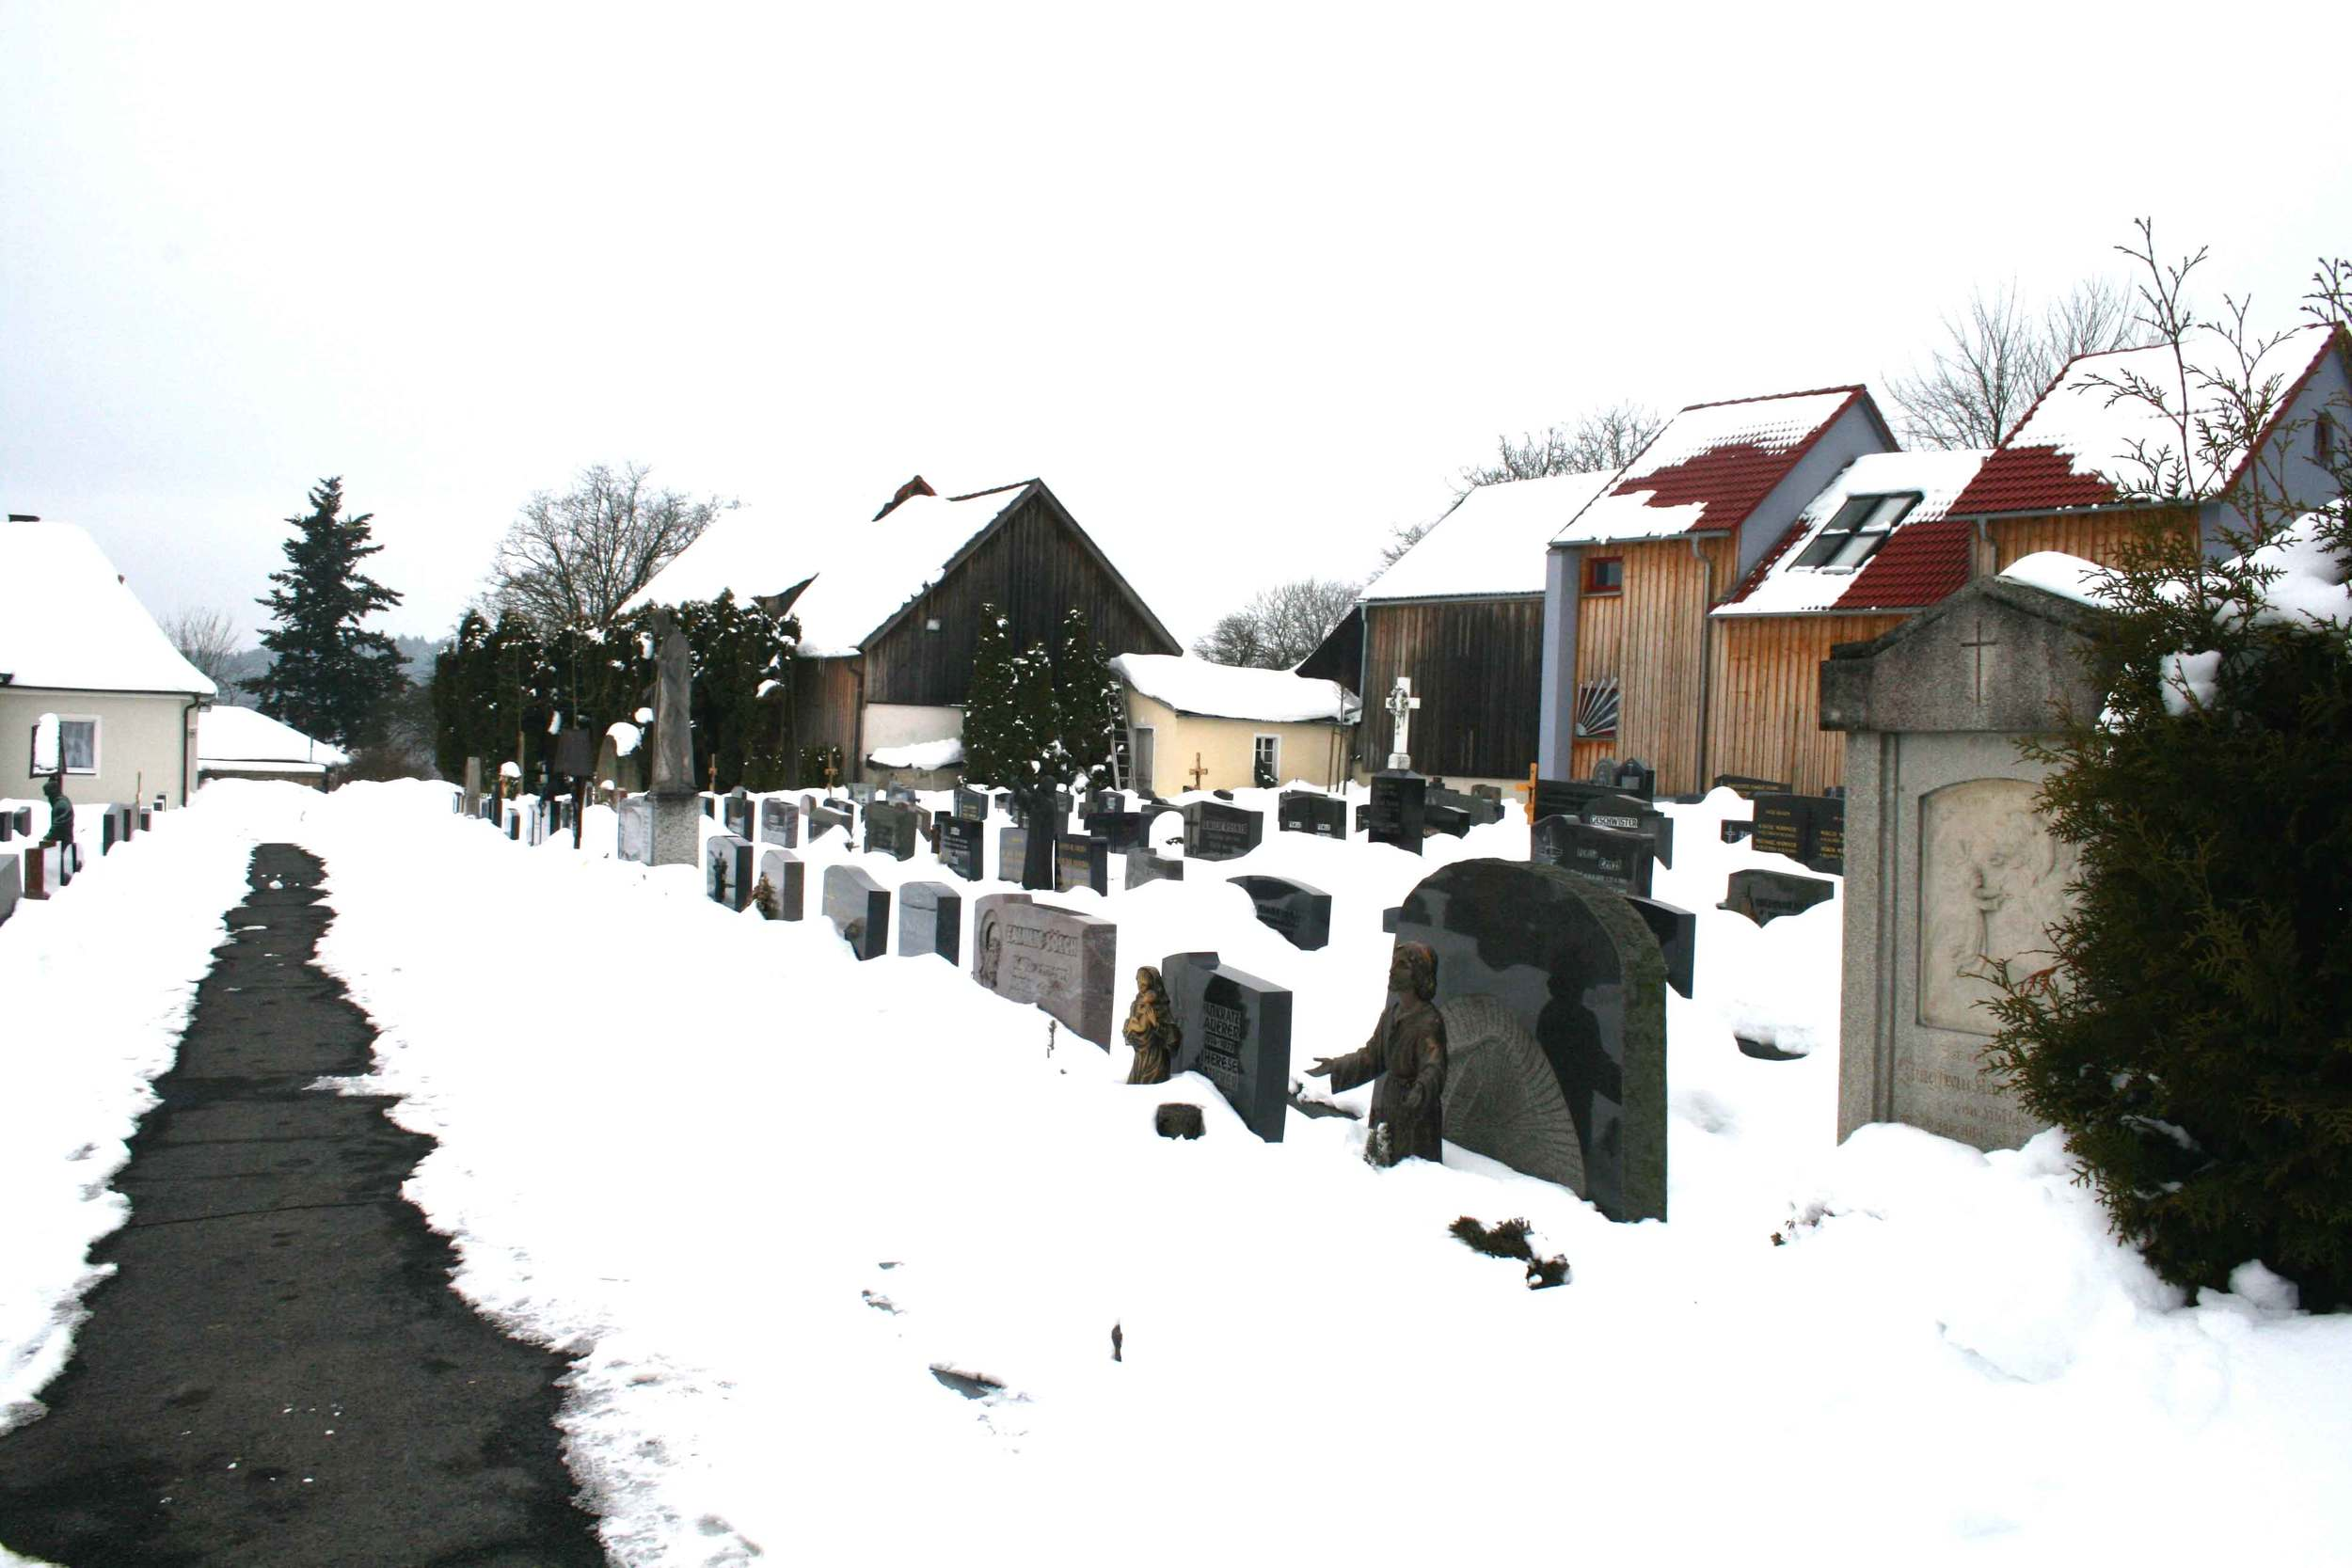 Image©Author, graveyard in Konnersreuth where the bodies of Saint Therese Neumann and her family as well as the priests in the church of Konnersreuth are buried.